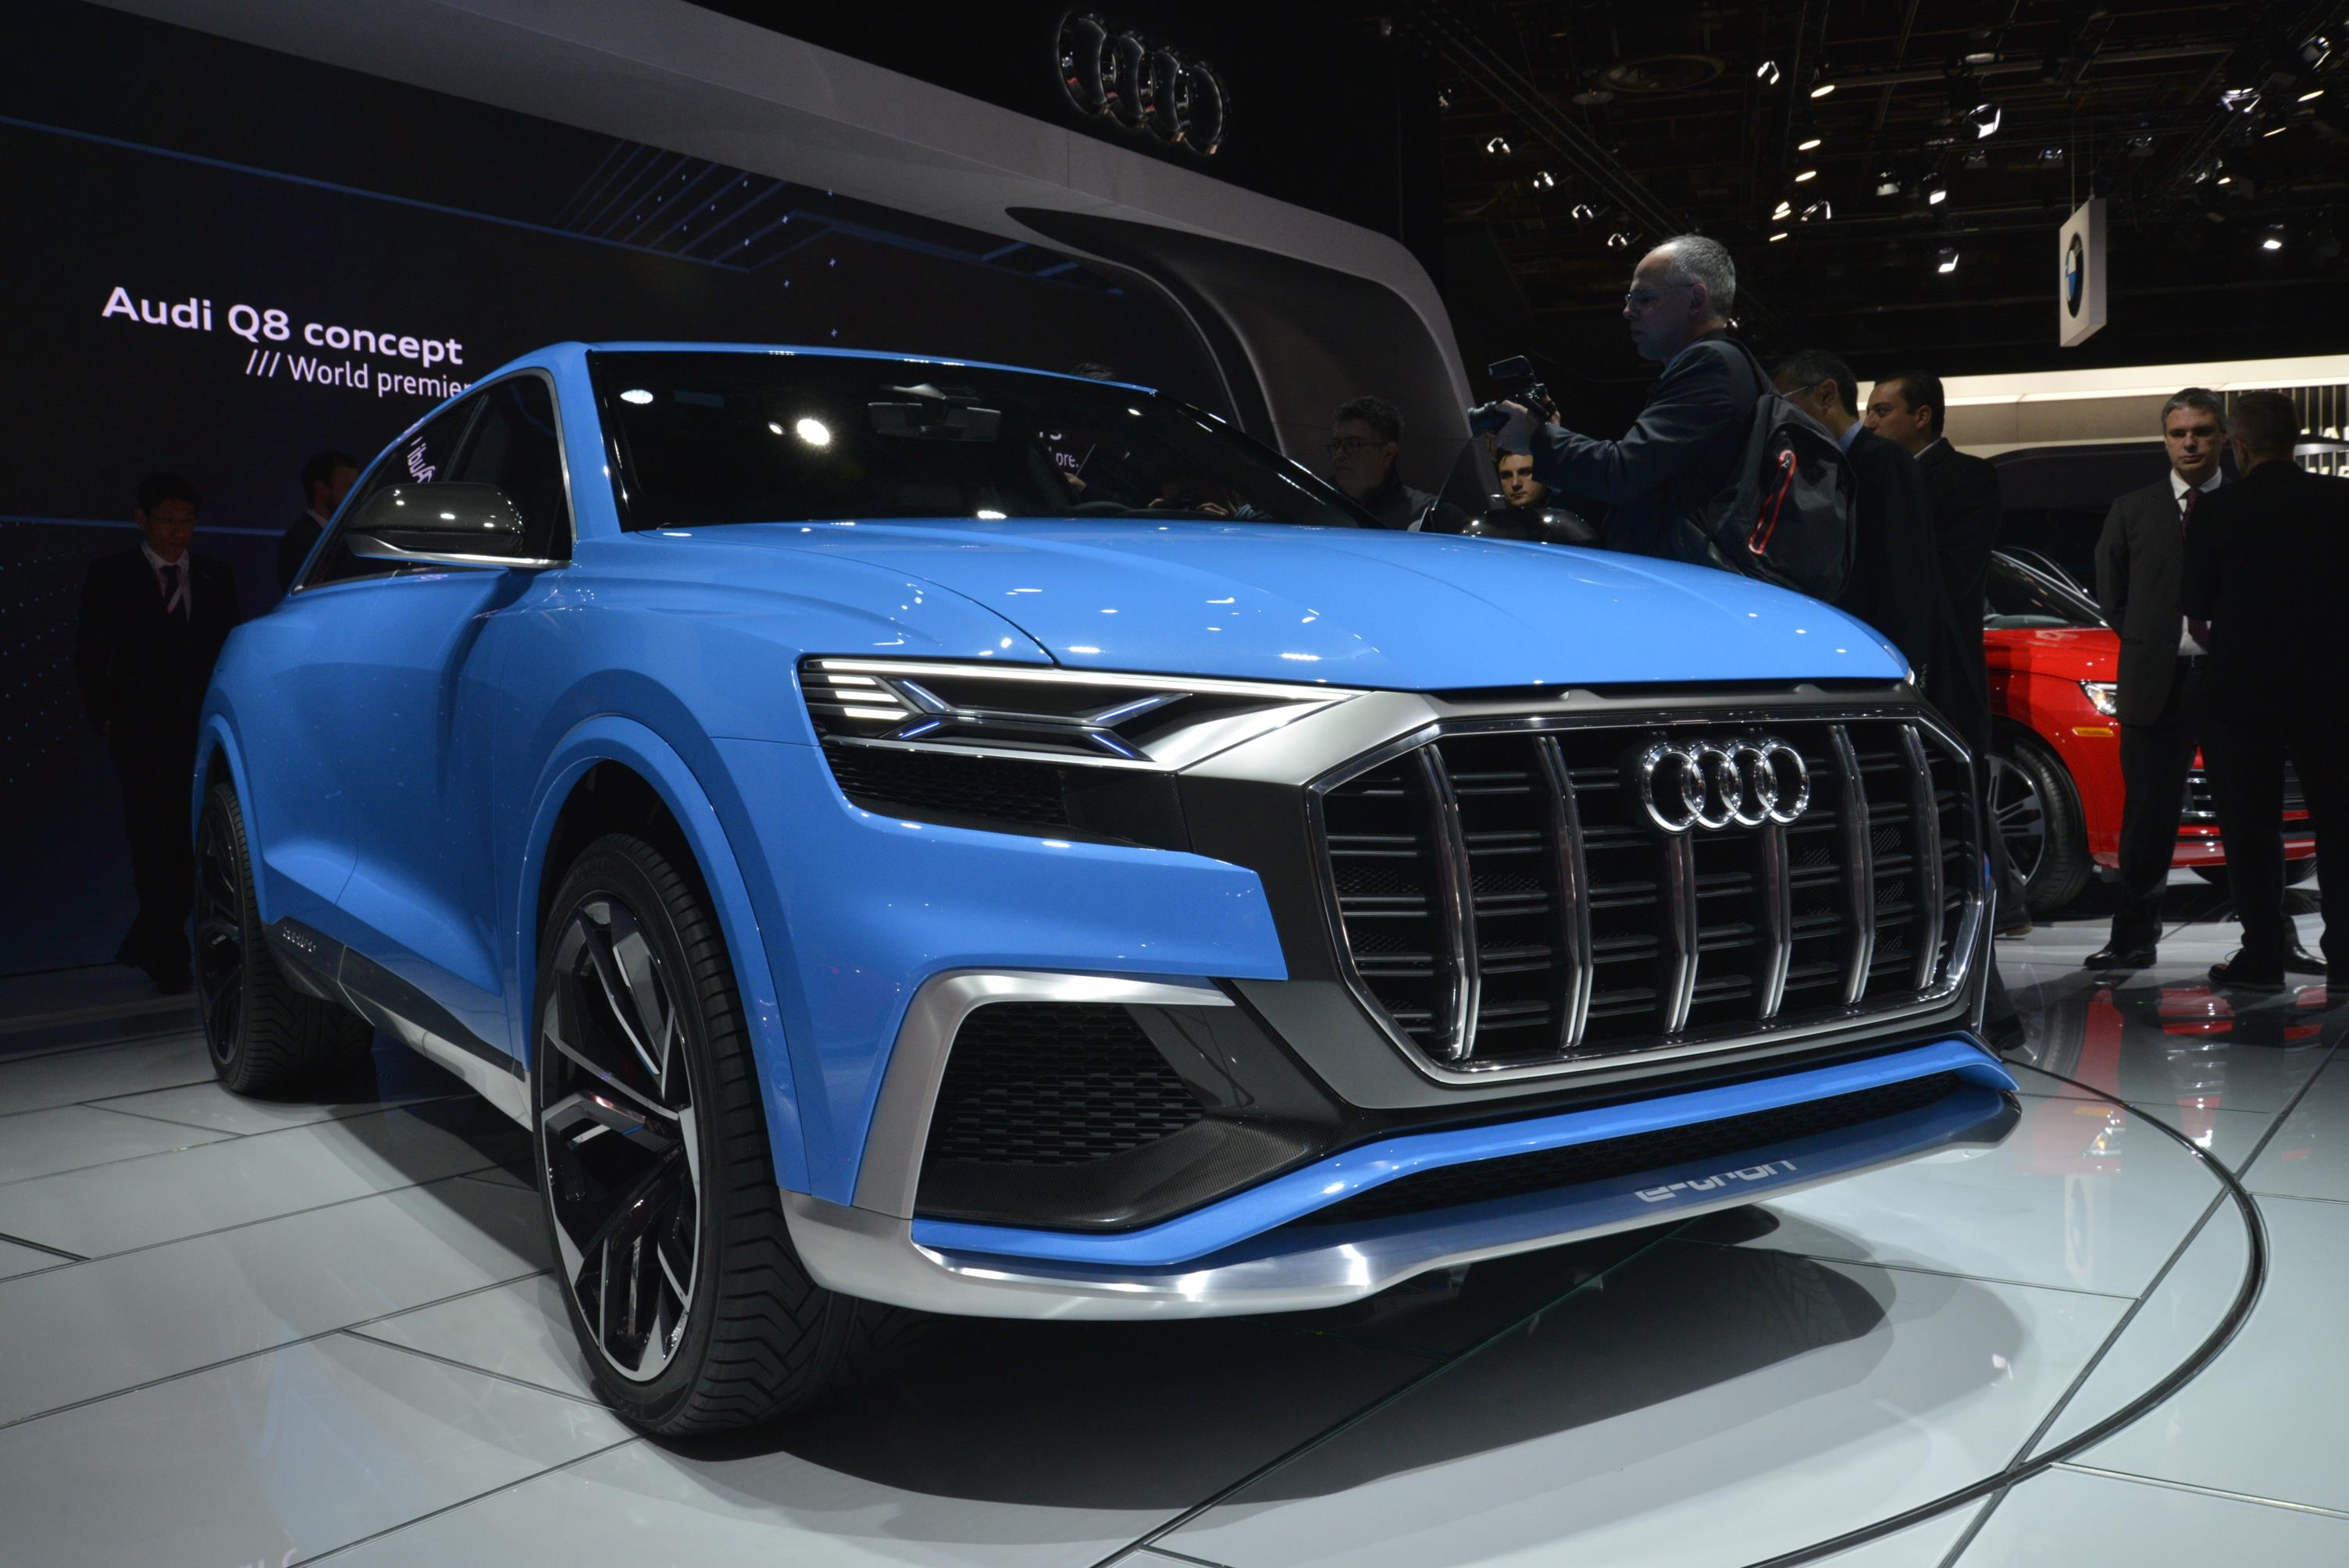 600hp+ Audi RS Q8 Concept to Debut at Geneva 2017